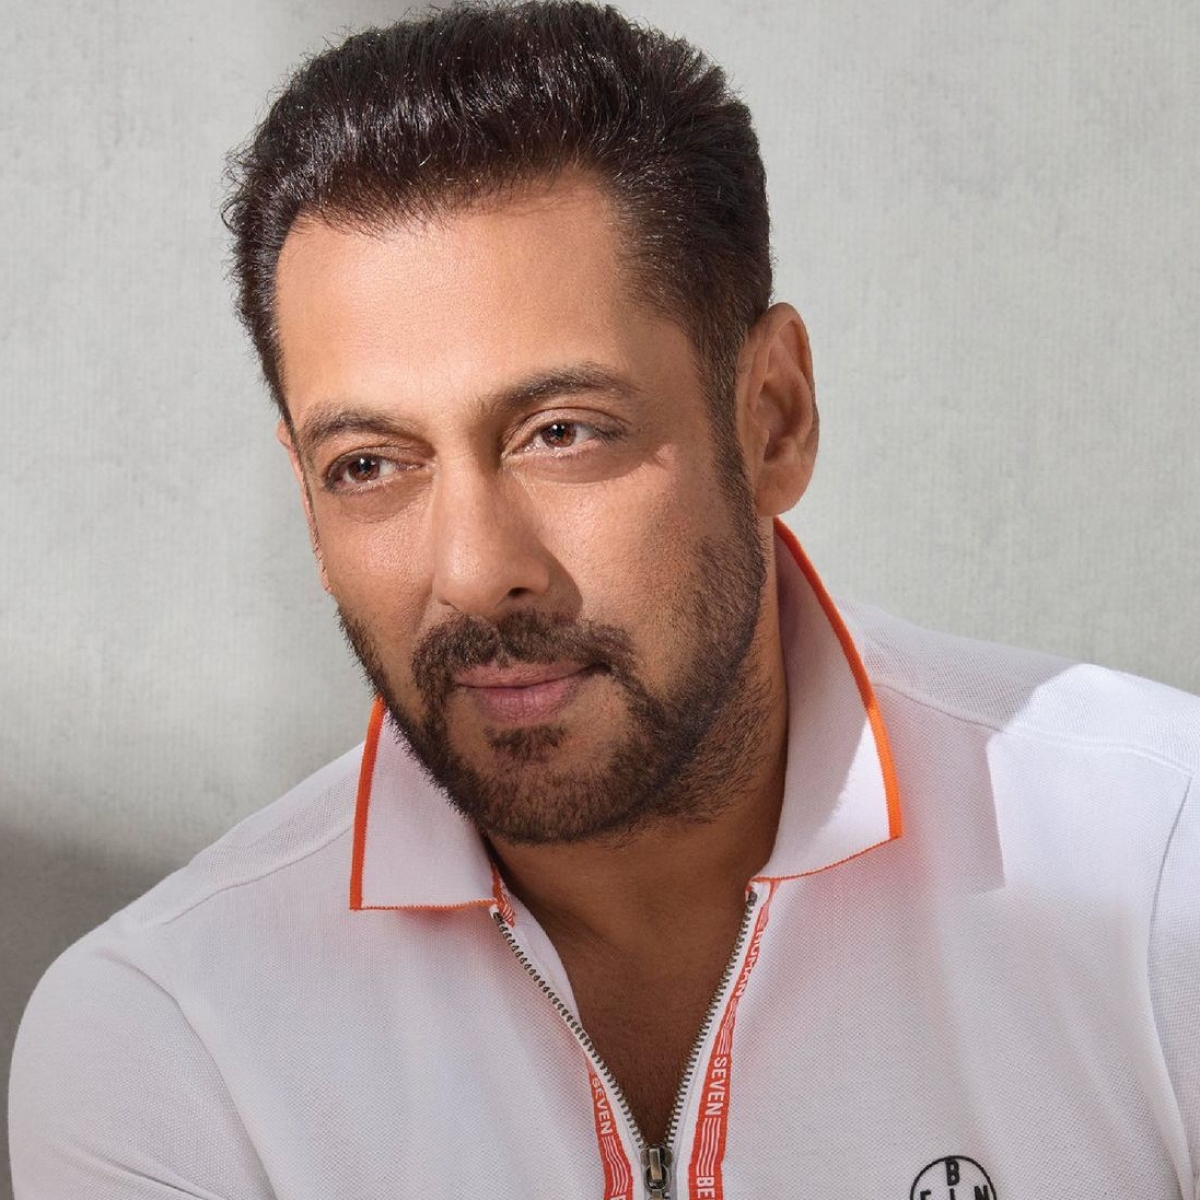 If lockdown continues, Salman Khan might push 'Radhe' release to next Eid